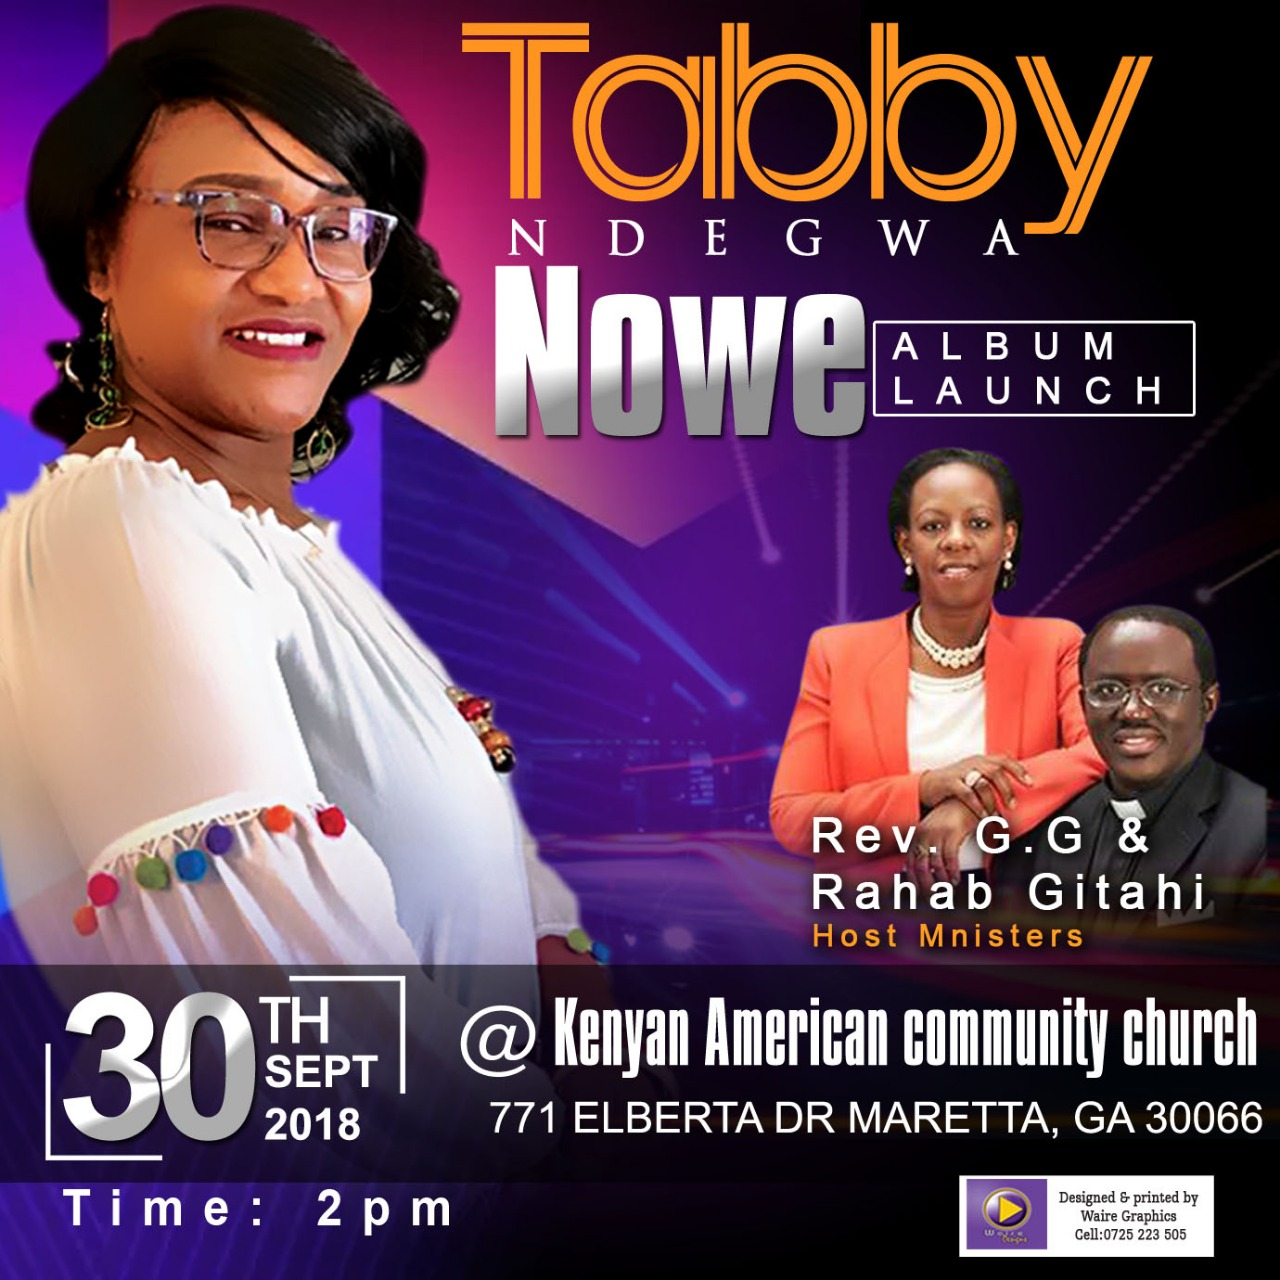 Tabby.Ndegwa.Nowe.CD.Launch